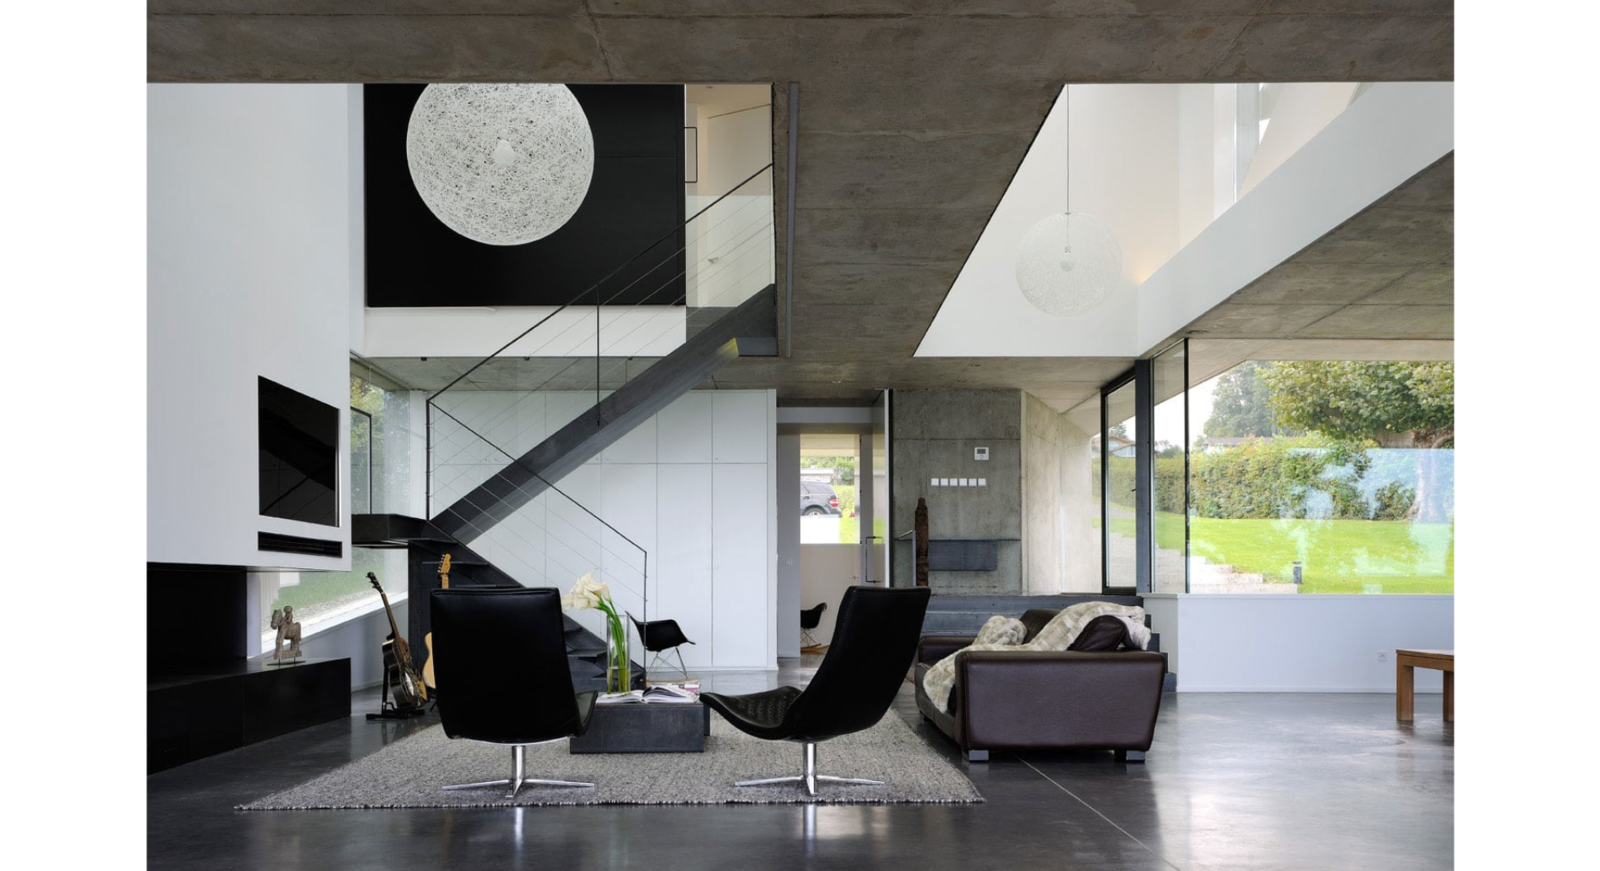 Living Room, Sofa, Recliner, Pendant Lighting, Ceiling Lighting, Coffee Tables, Concrete Floor, and Standard Layout Fireplace The living room and its void   House on the Lake